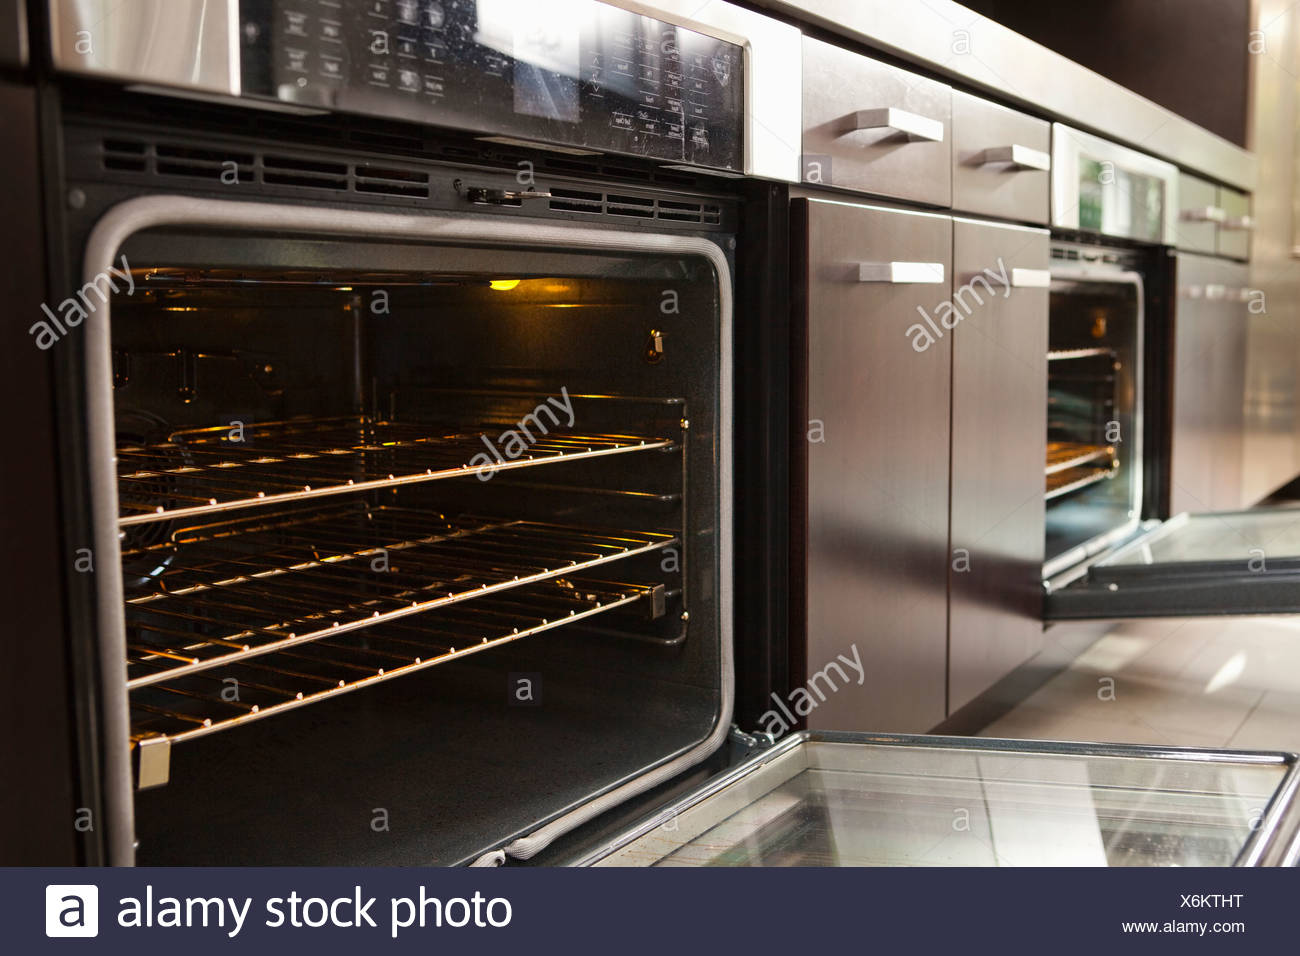 Open oven in industrial kitchen Stock Photo: 279490228 - Alamy